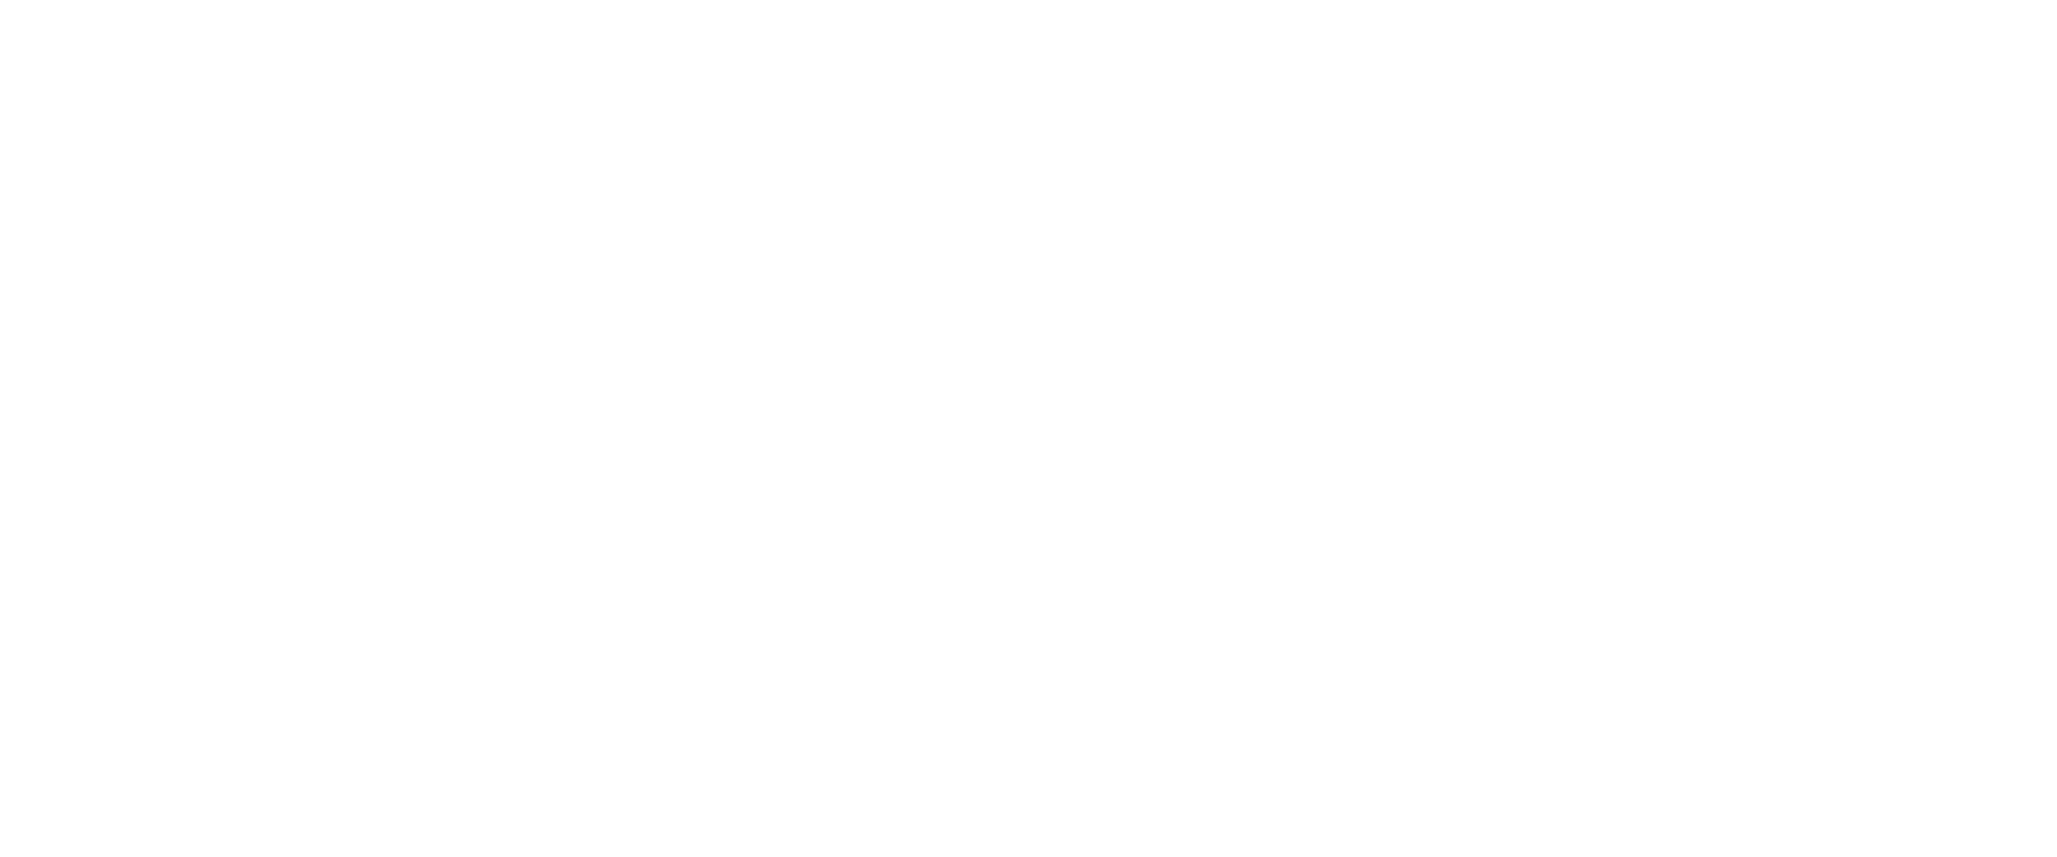 http://byronwritersfestival.com/wp-content/uploads/2021/05/Regional-Arts-NSW-White.png